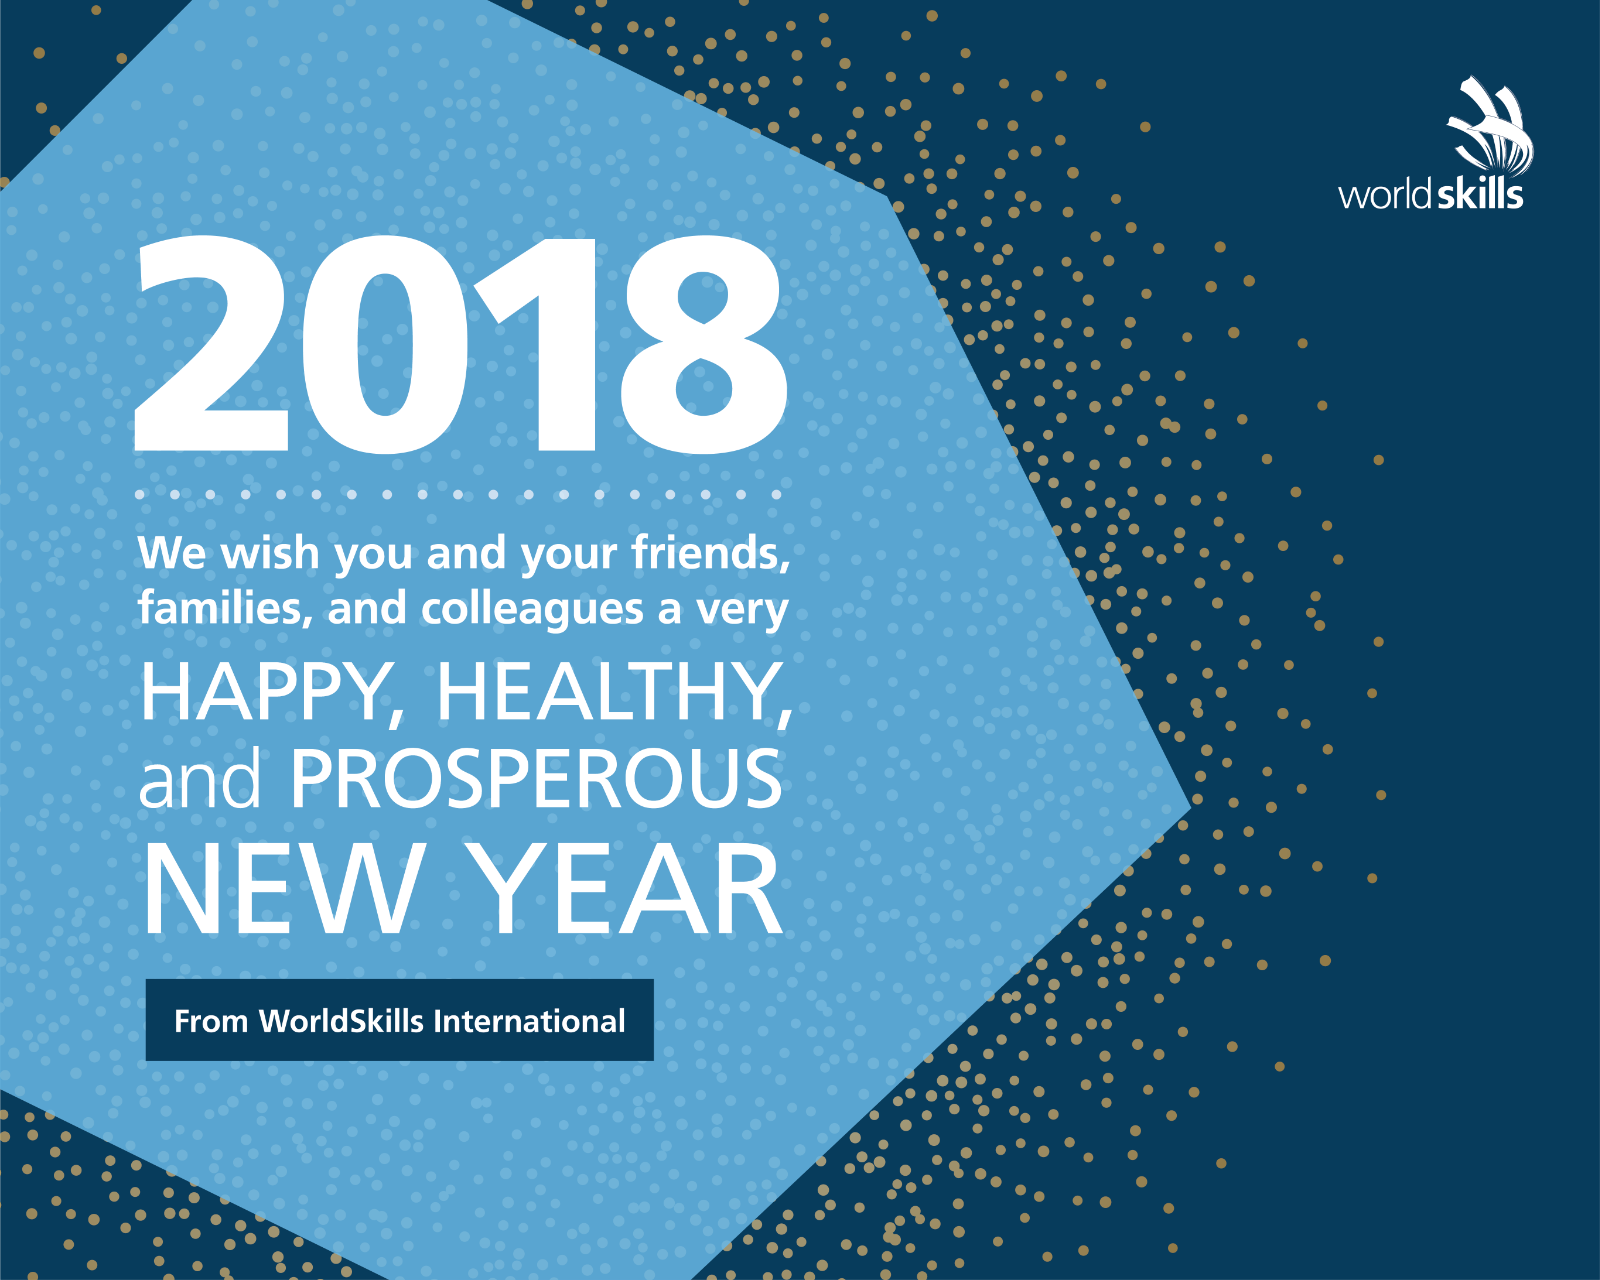 We wish you and your friends, families, and colleagues a very happy, healthy, and prosperous New Year. From WorldSkills International